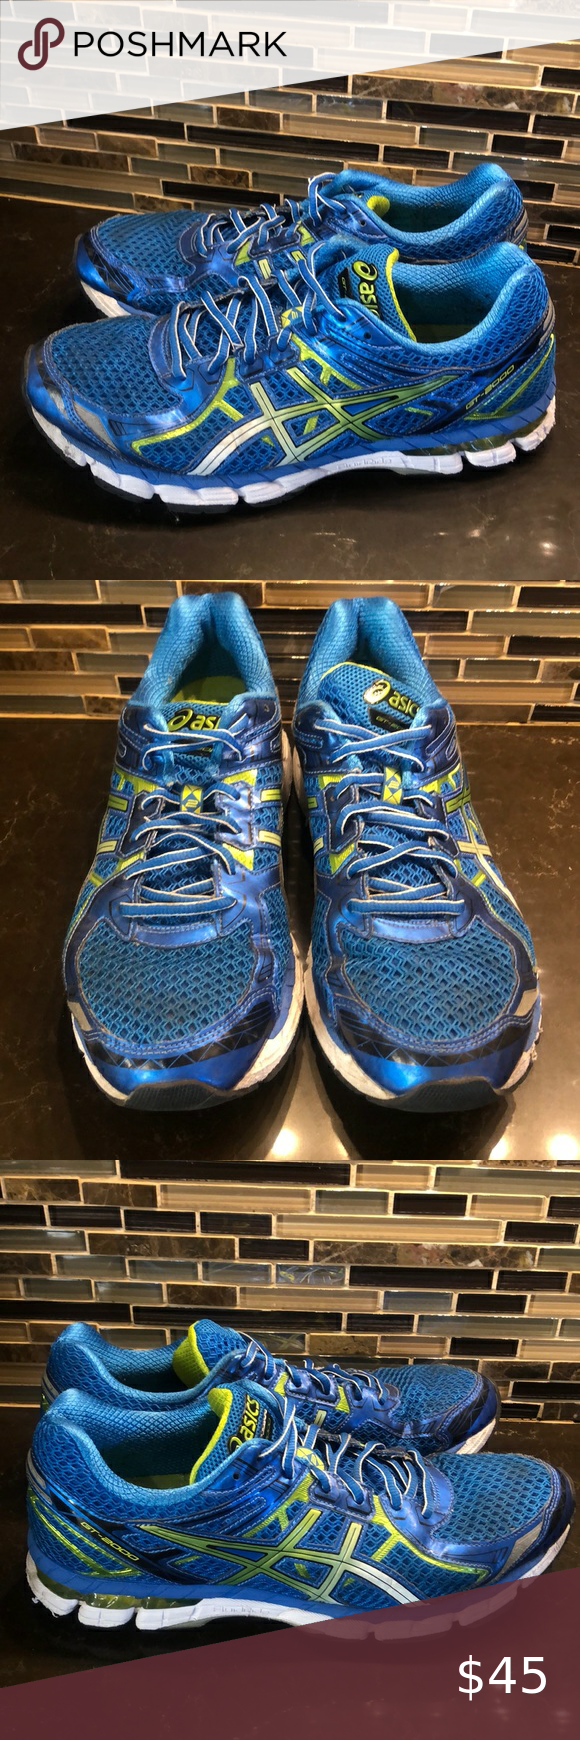 Sputare Indipendentemente Irrigazione  ASICS fluidride GT-2000 running shoes t3pn In good used condition Asics  Shoes Athletic Shoes in 2020 | Running shoes, Shoes, Asics shoes